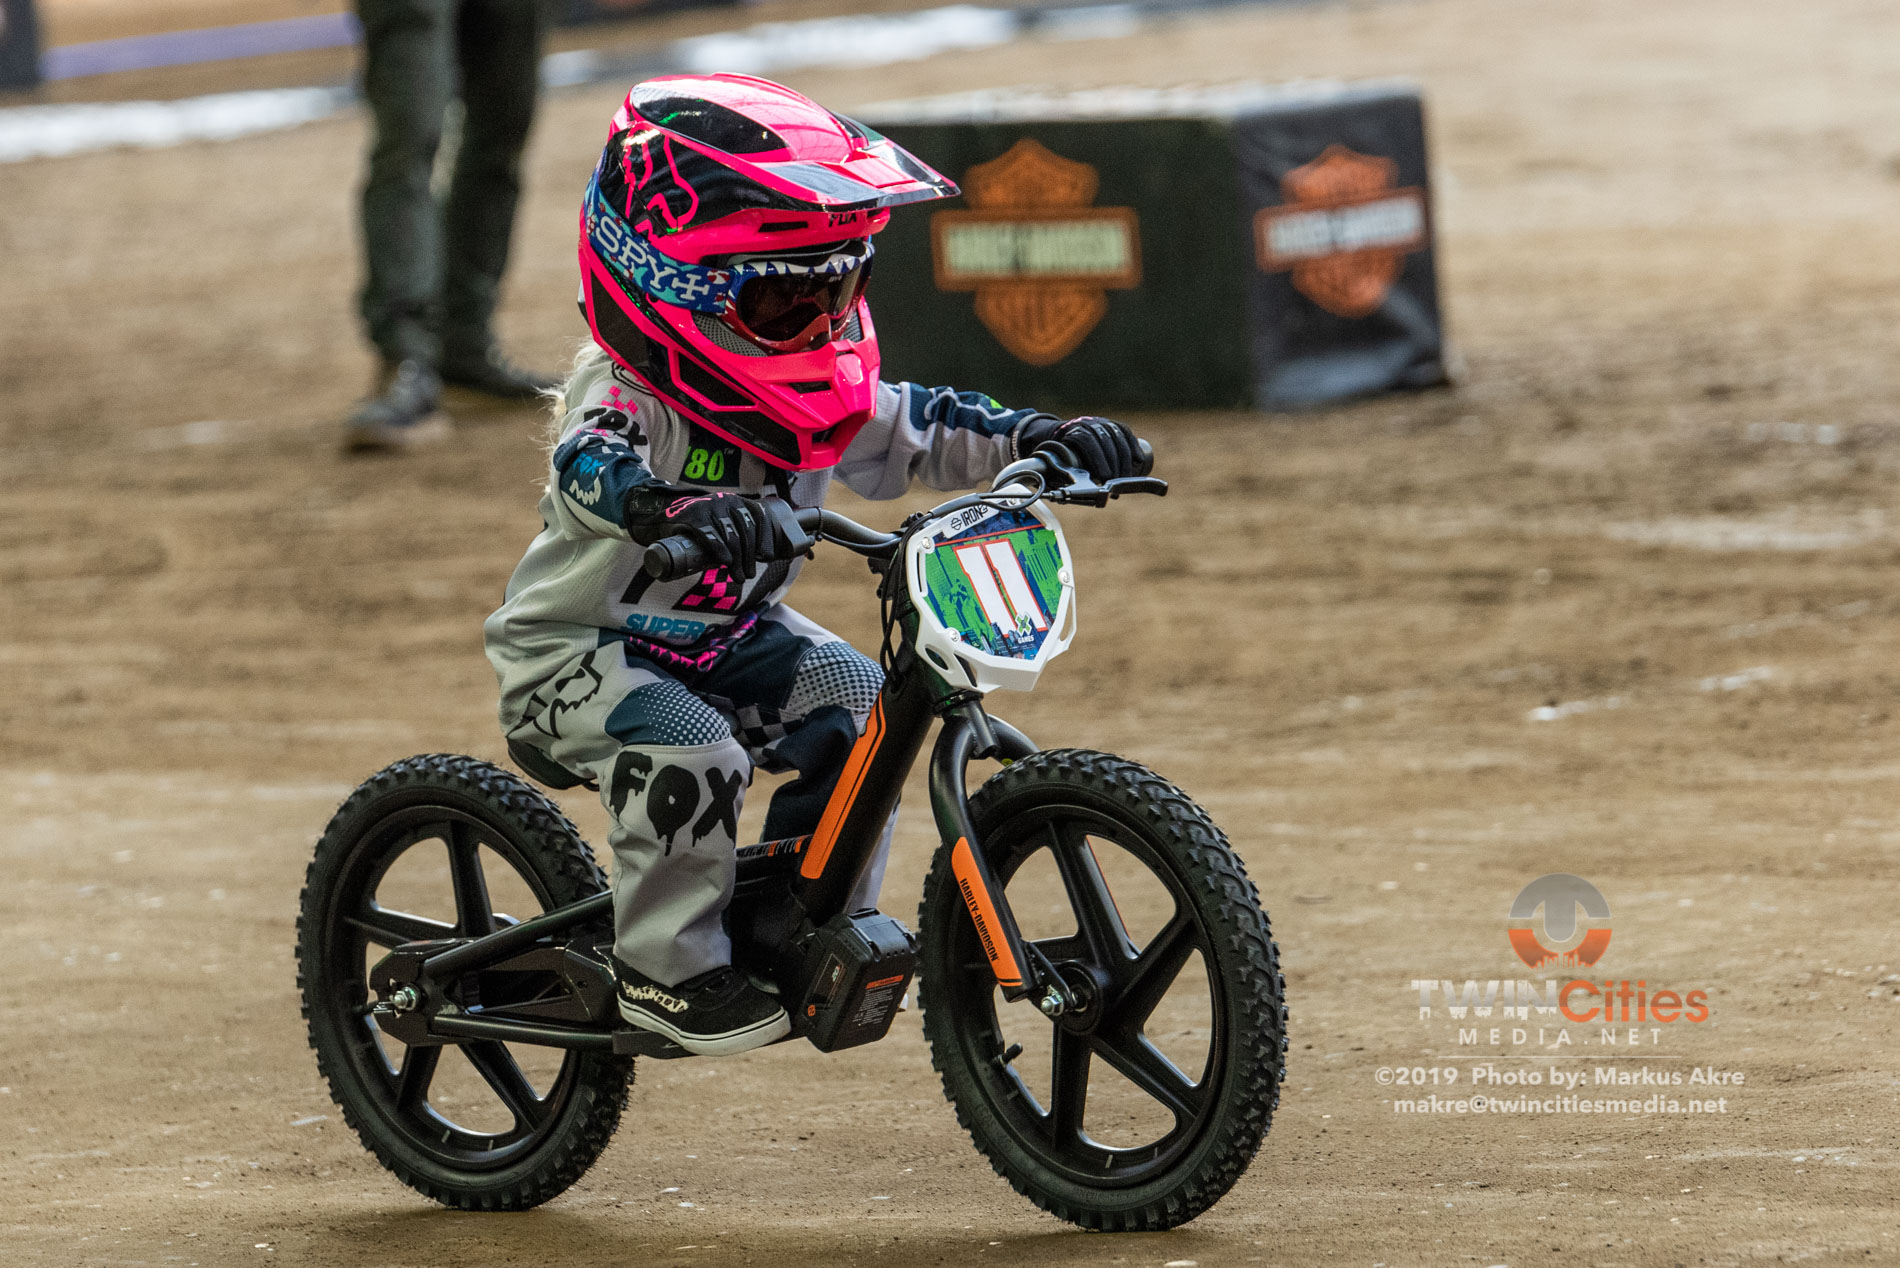 2019-X-Games-Day-4-Kid-Race-3